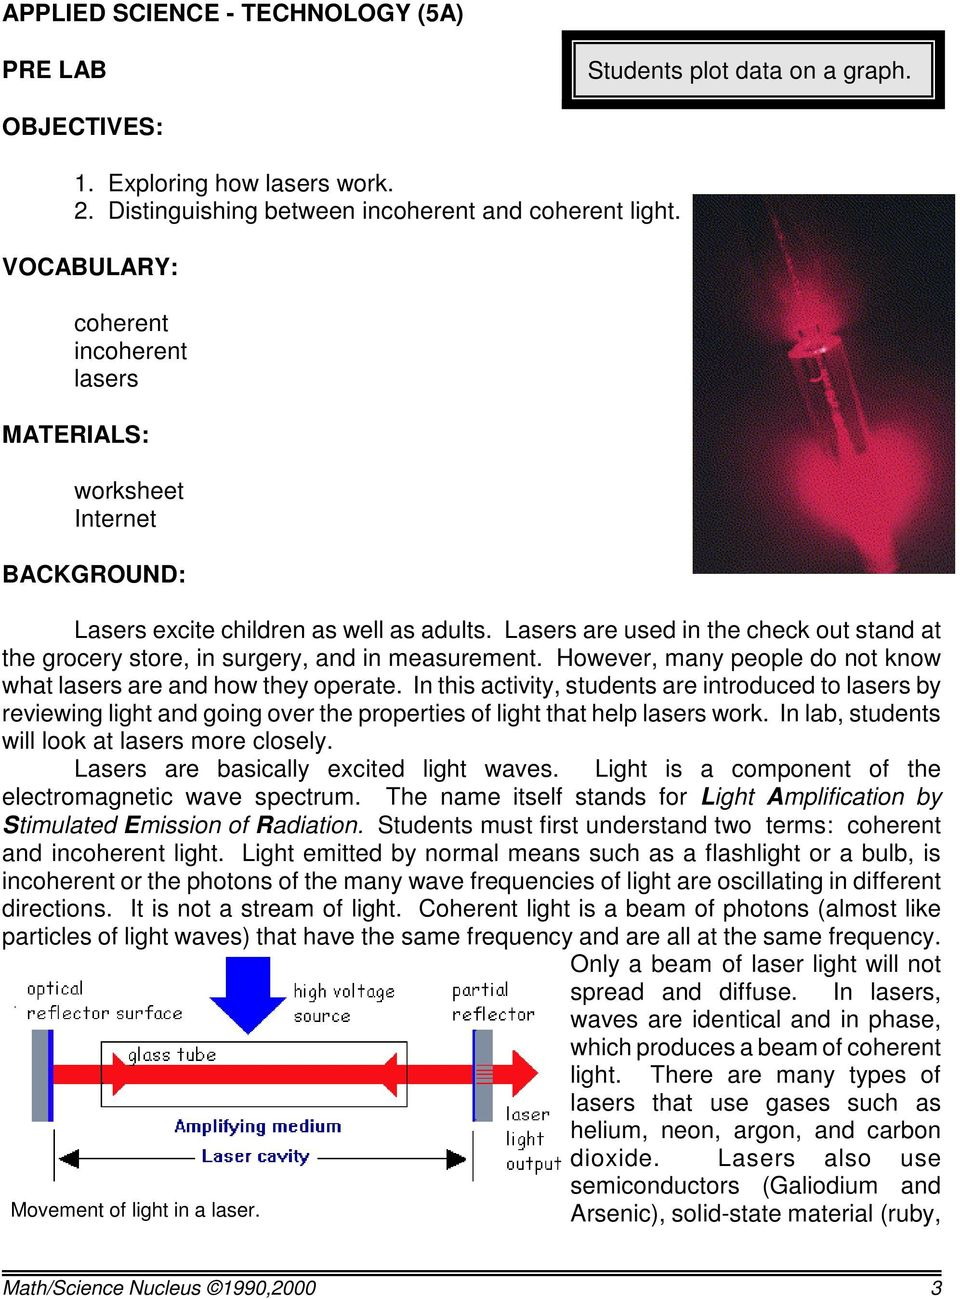 Lasers are used in the check out stand at the grocery store, in surgery, and in measurement. However, many people do not know what lasers are and how they operate.